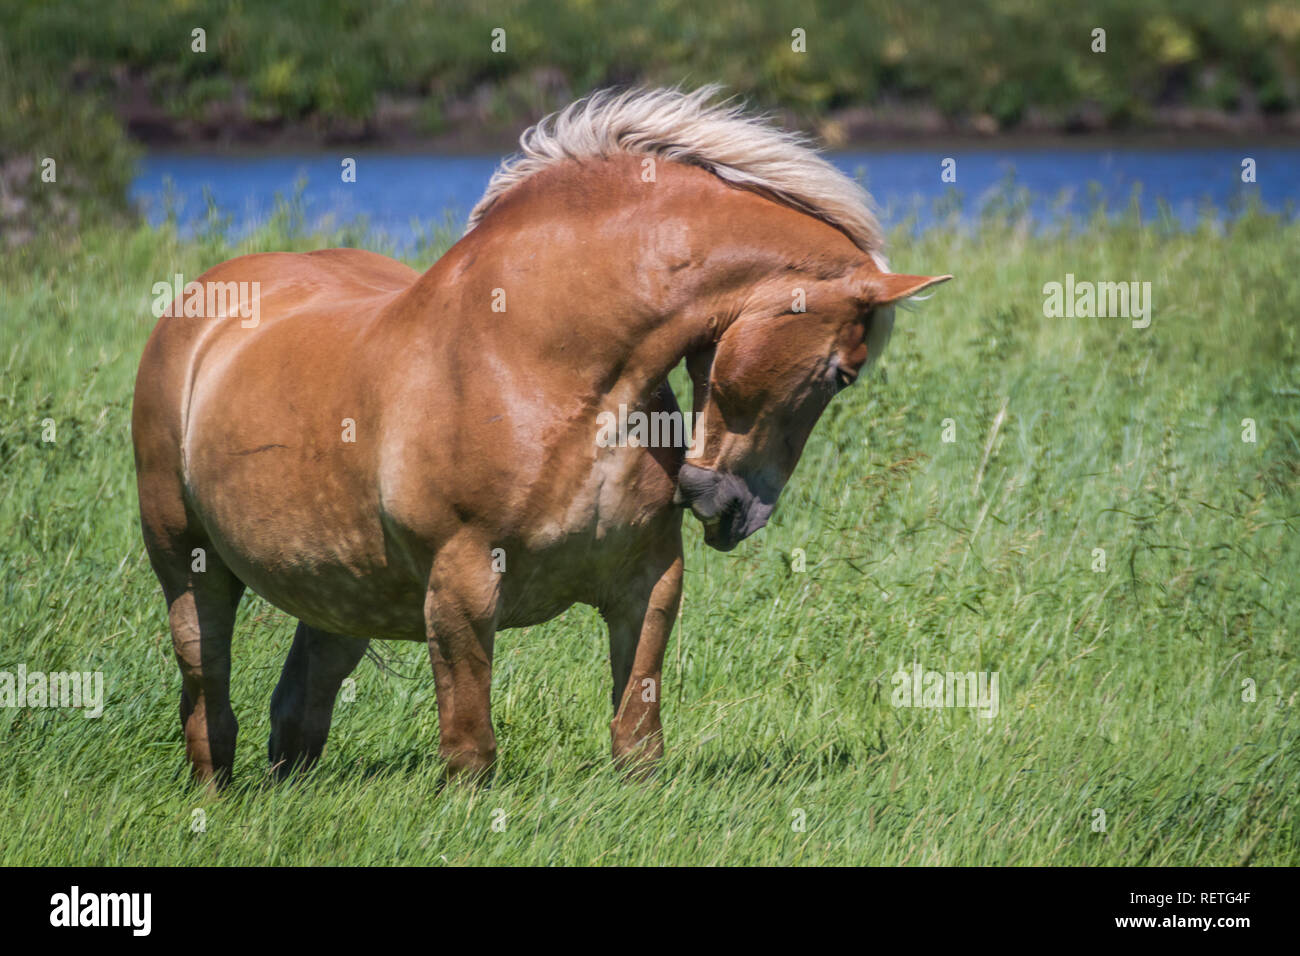 Beautiful, spirited, lively horse struts its stuff in pasture with lush deep green grass and water in rural Alberta, Canada. Stock Photo